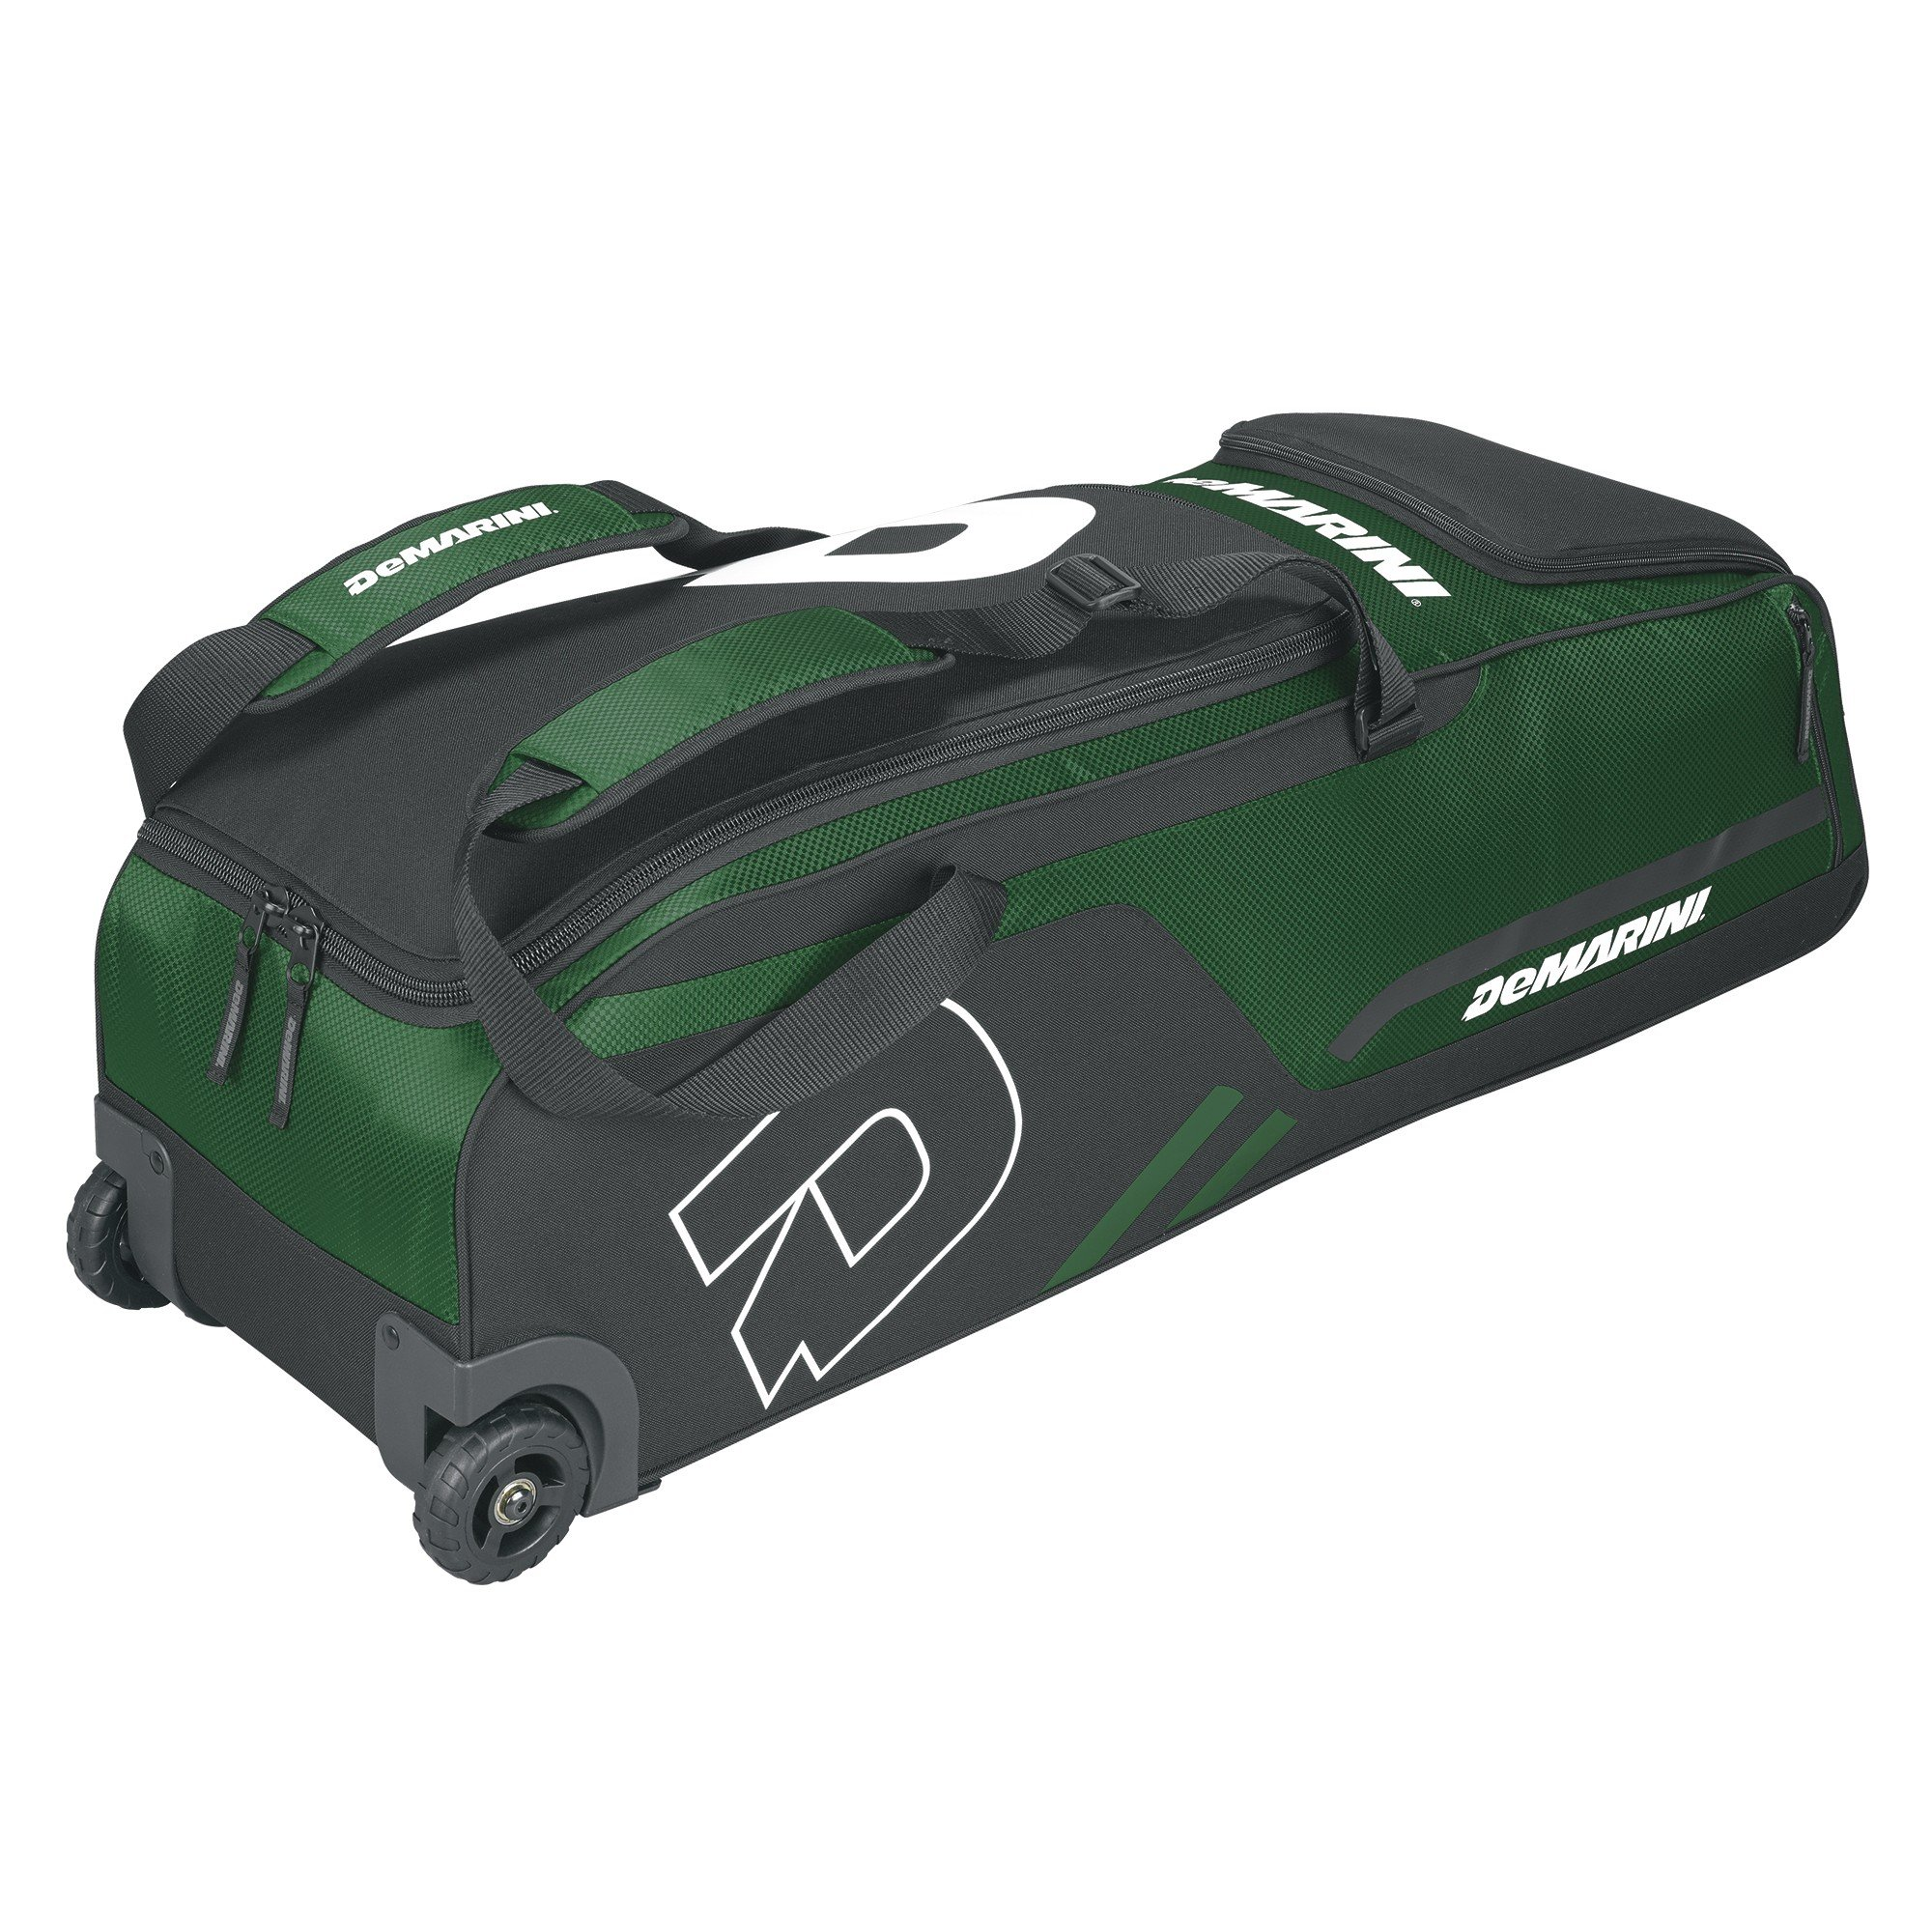 DeMarini Momentum Wheeled Bag, Dark Green by DeMarini